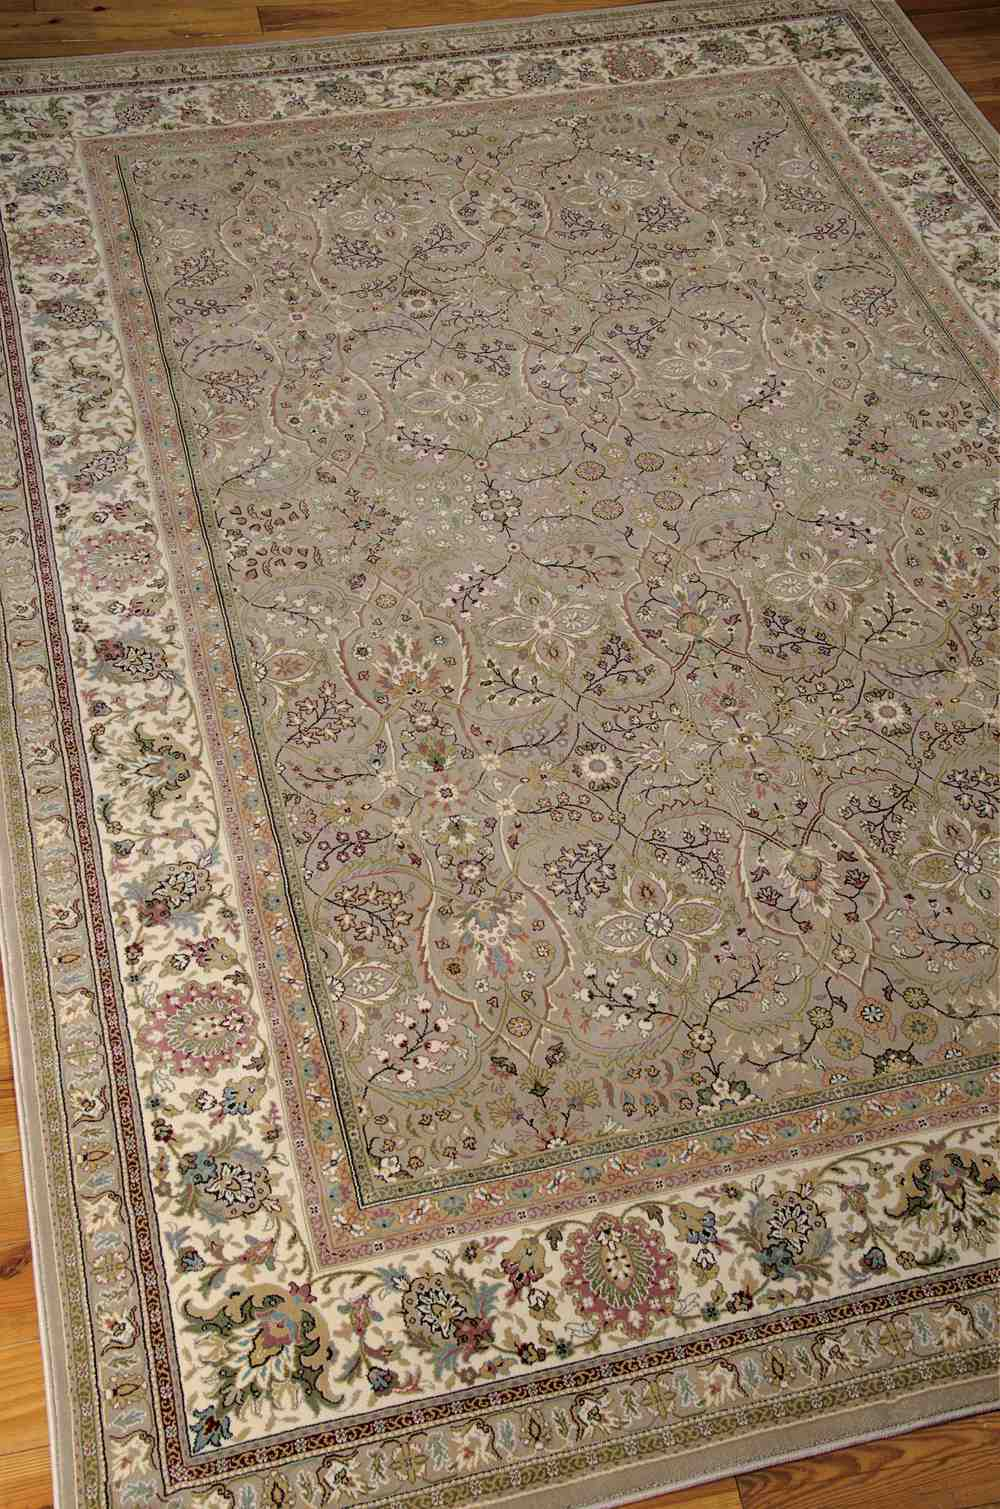 Nourison Kathy Ireland Antiquities Ant03 Cream Area Rug